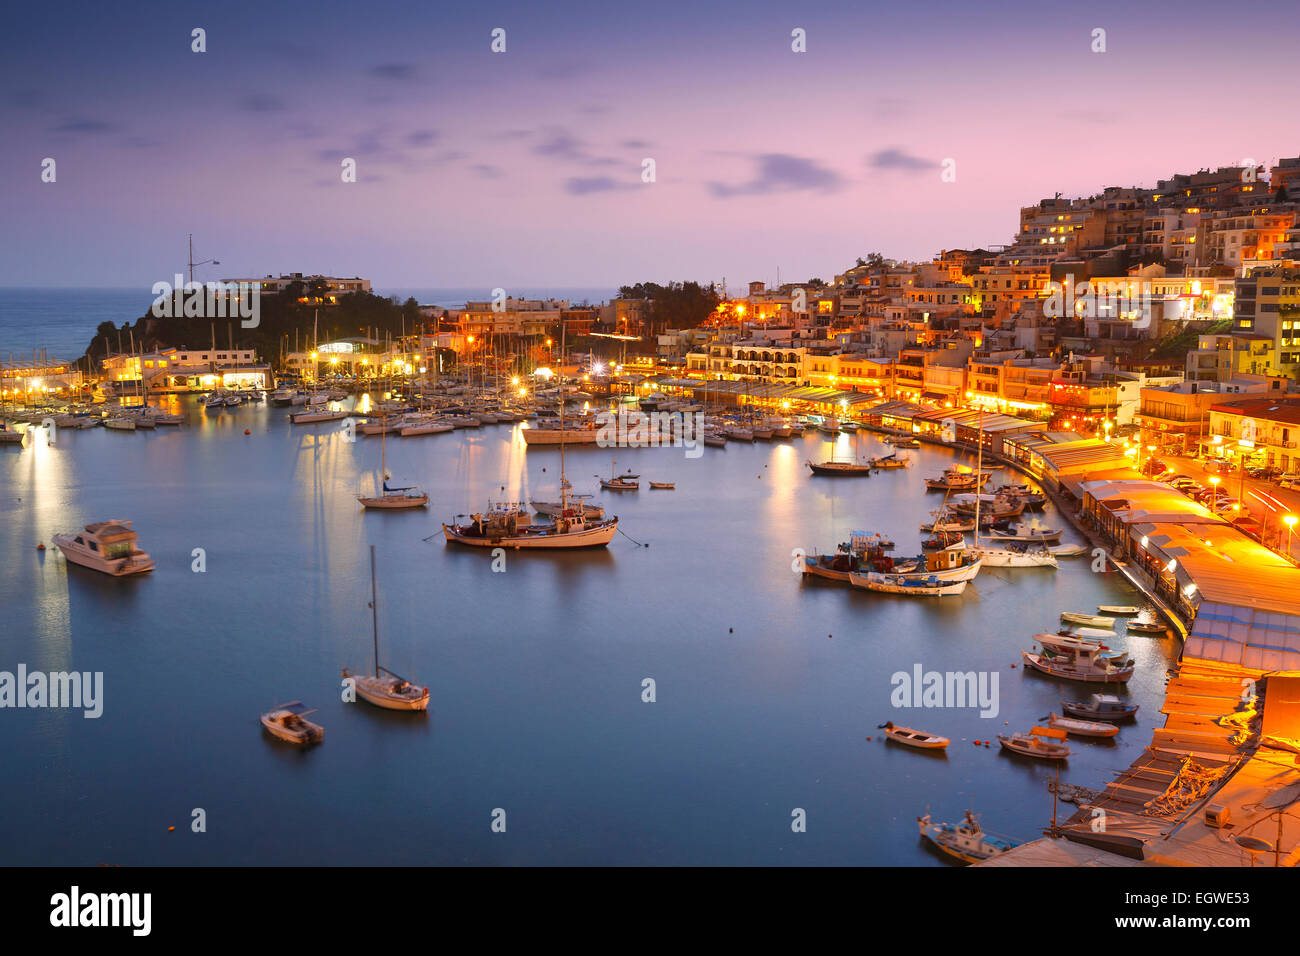 Evening in Mikrolimano marina in Athens, Greece. - Stock Image